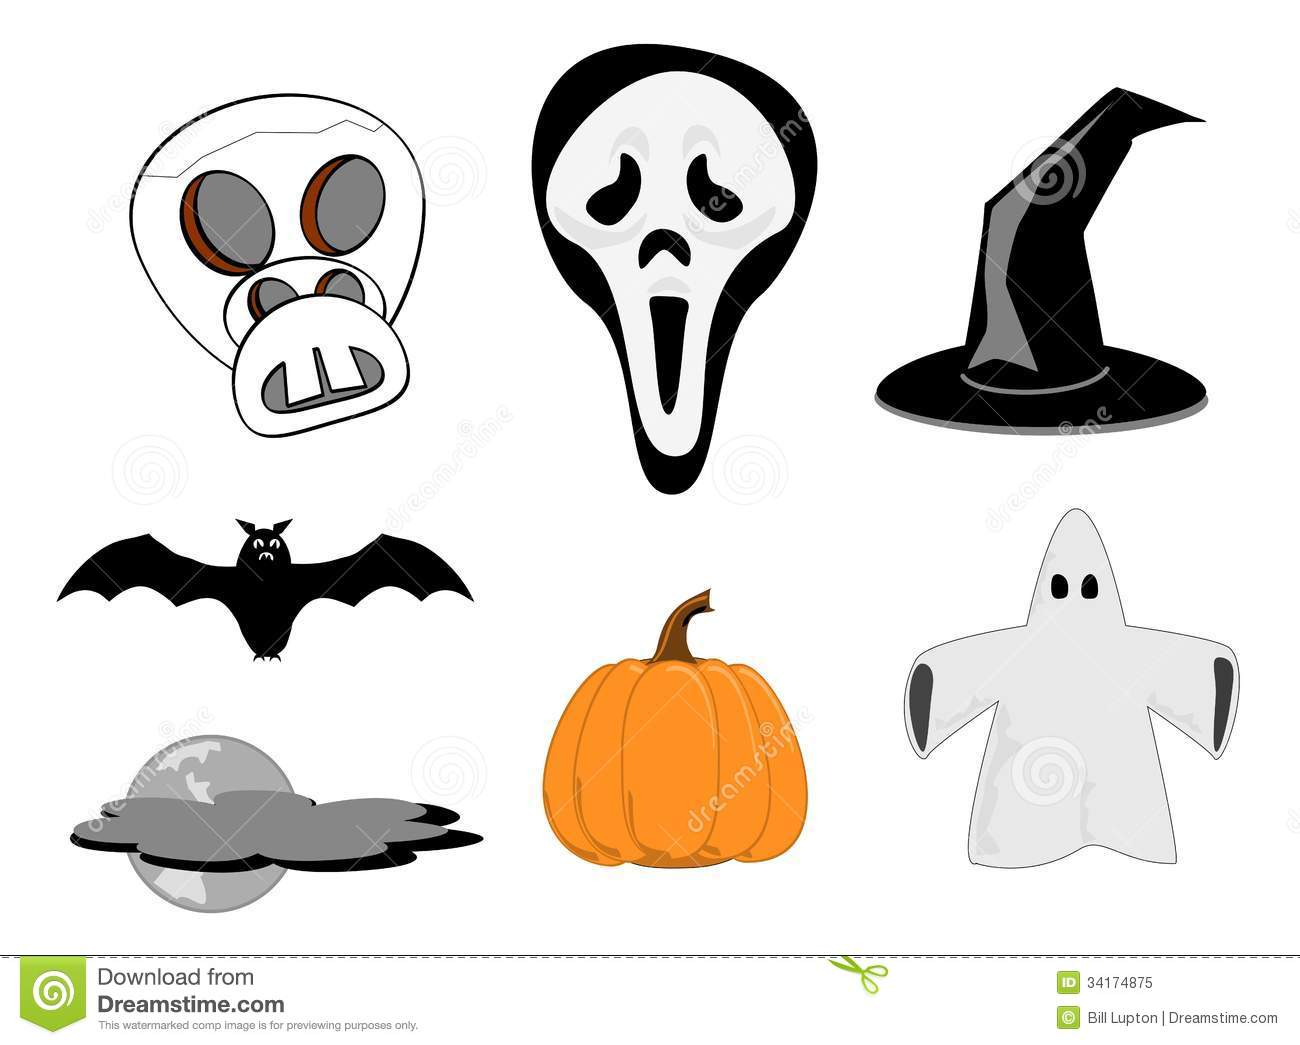 Phanom clipart halloween bat Cute%20halloween%20ghost%20clip%20art Art Panda Halloween Images